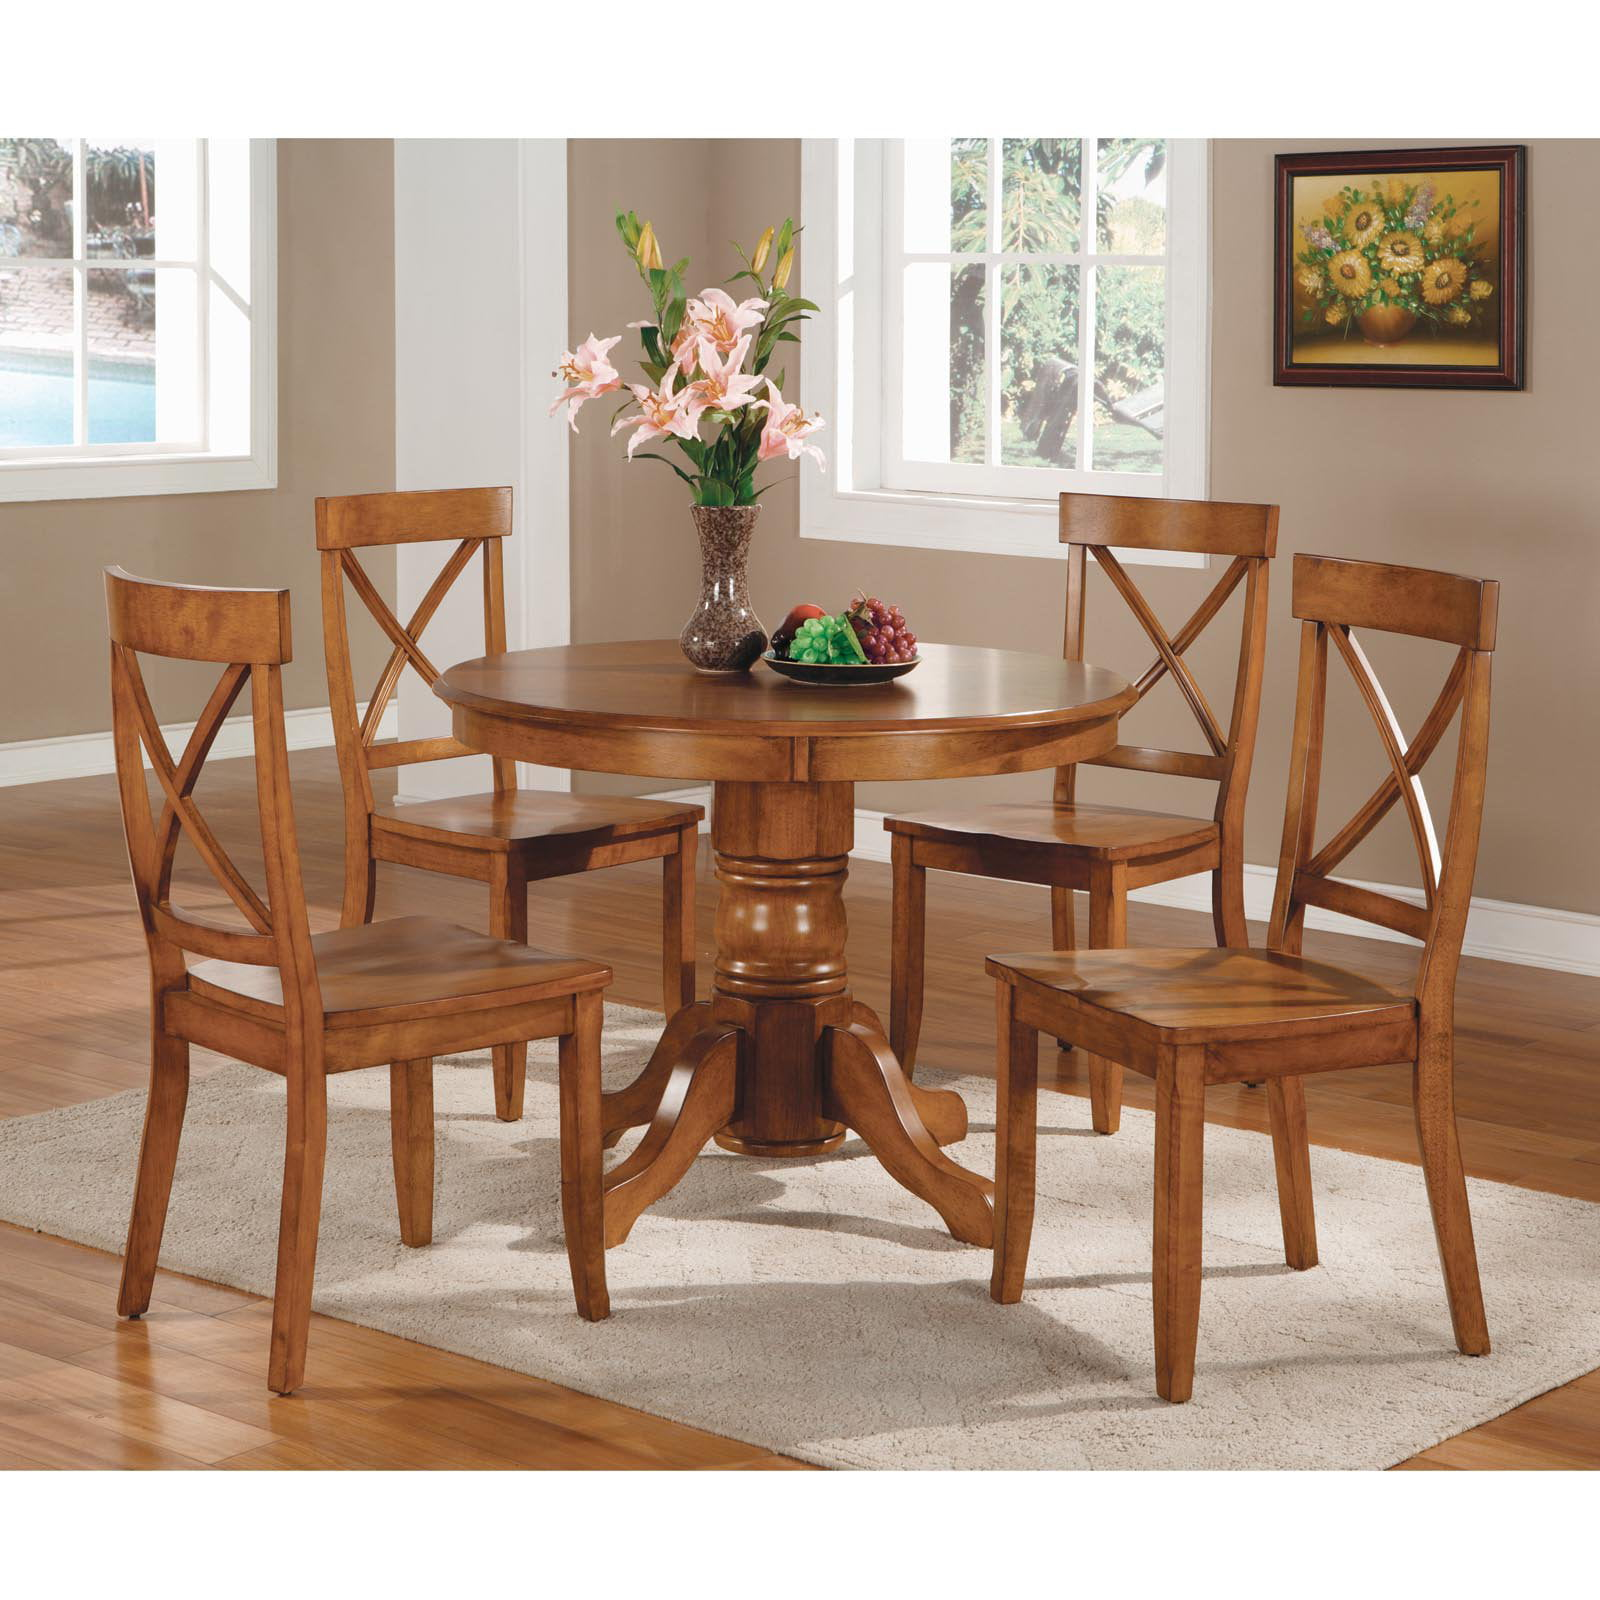 Home styles pedestal dining table cottage oak walmart watchthetrailerfo